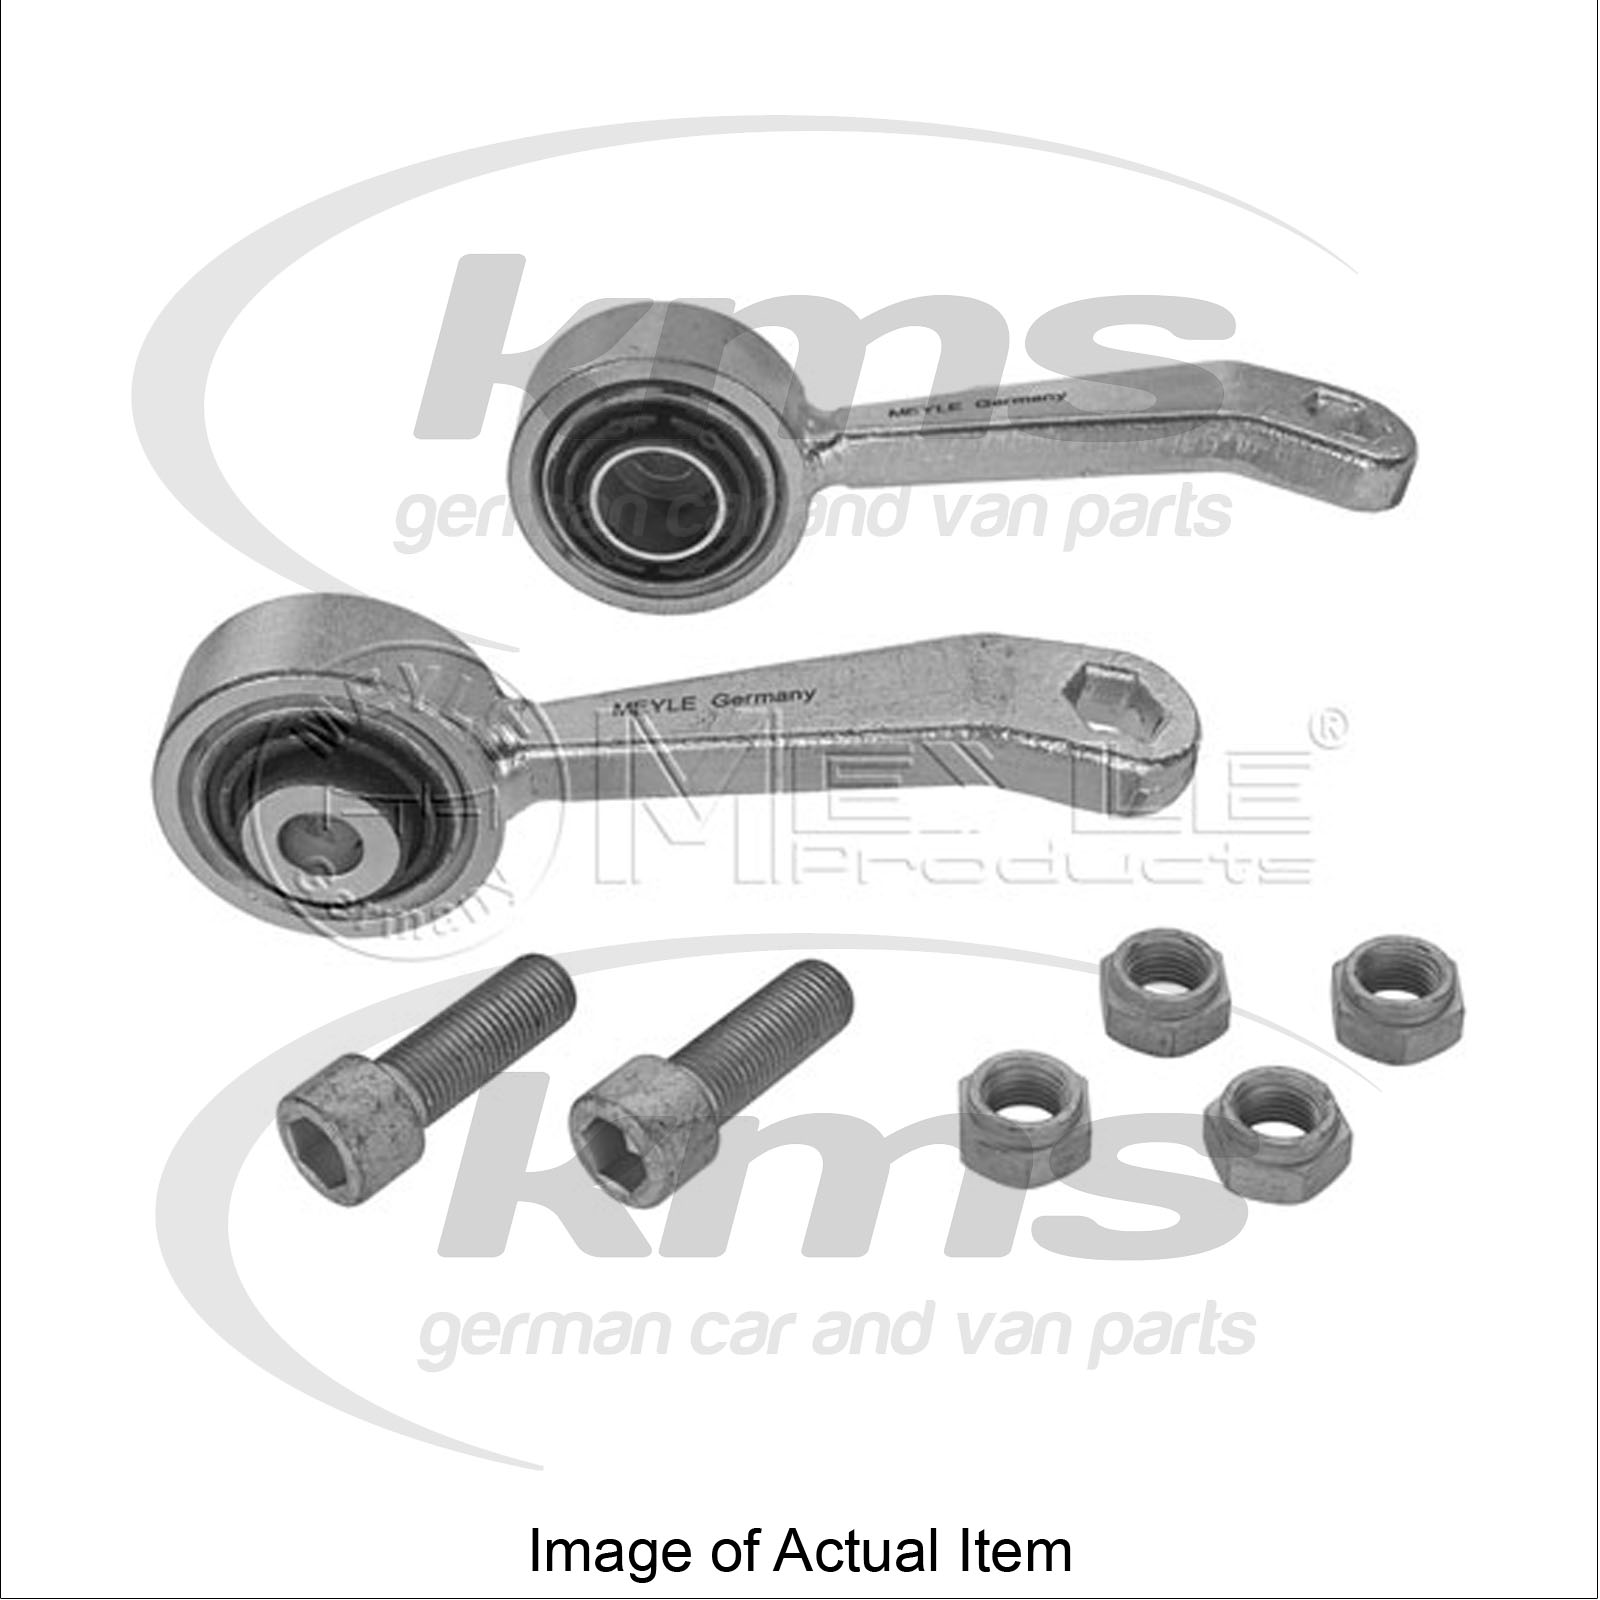 ANTI-ROLL BAR STABILISER KIT MERCEDES E-CLASS (W211) E 320